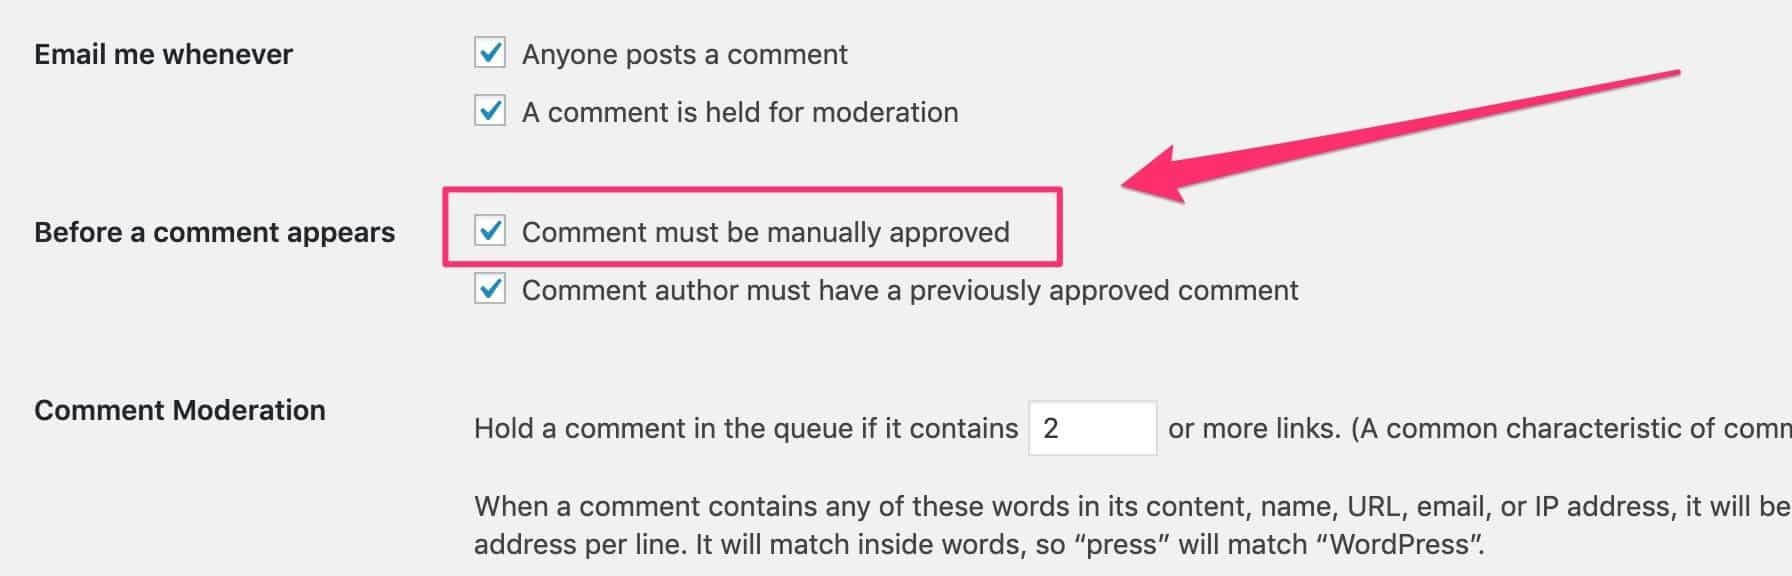 manual approval for commenst